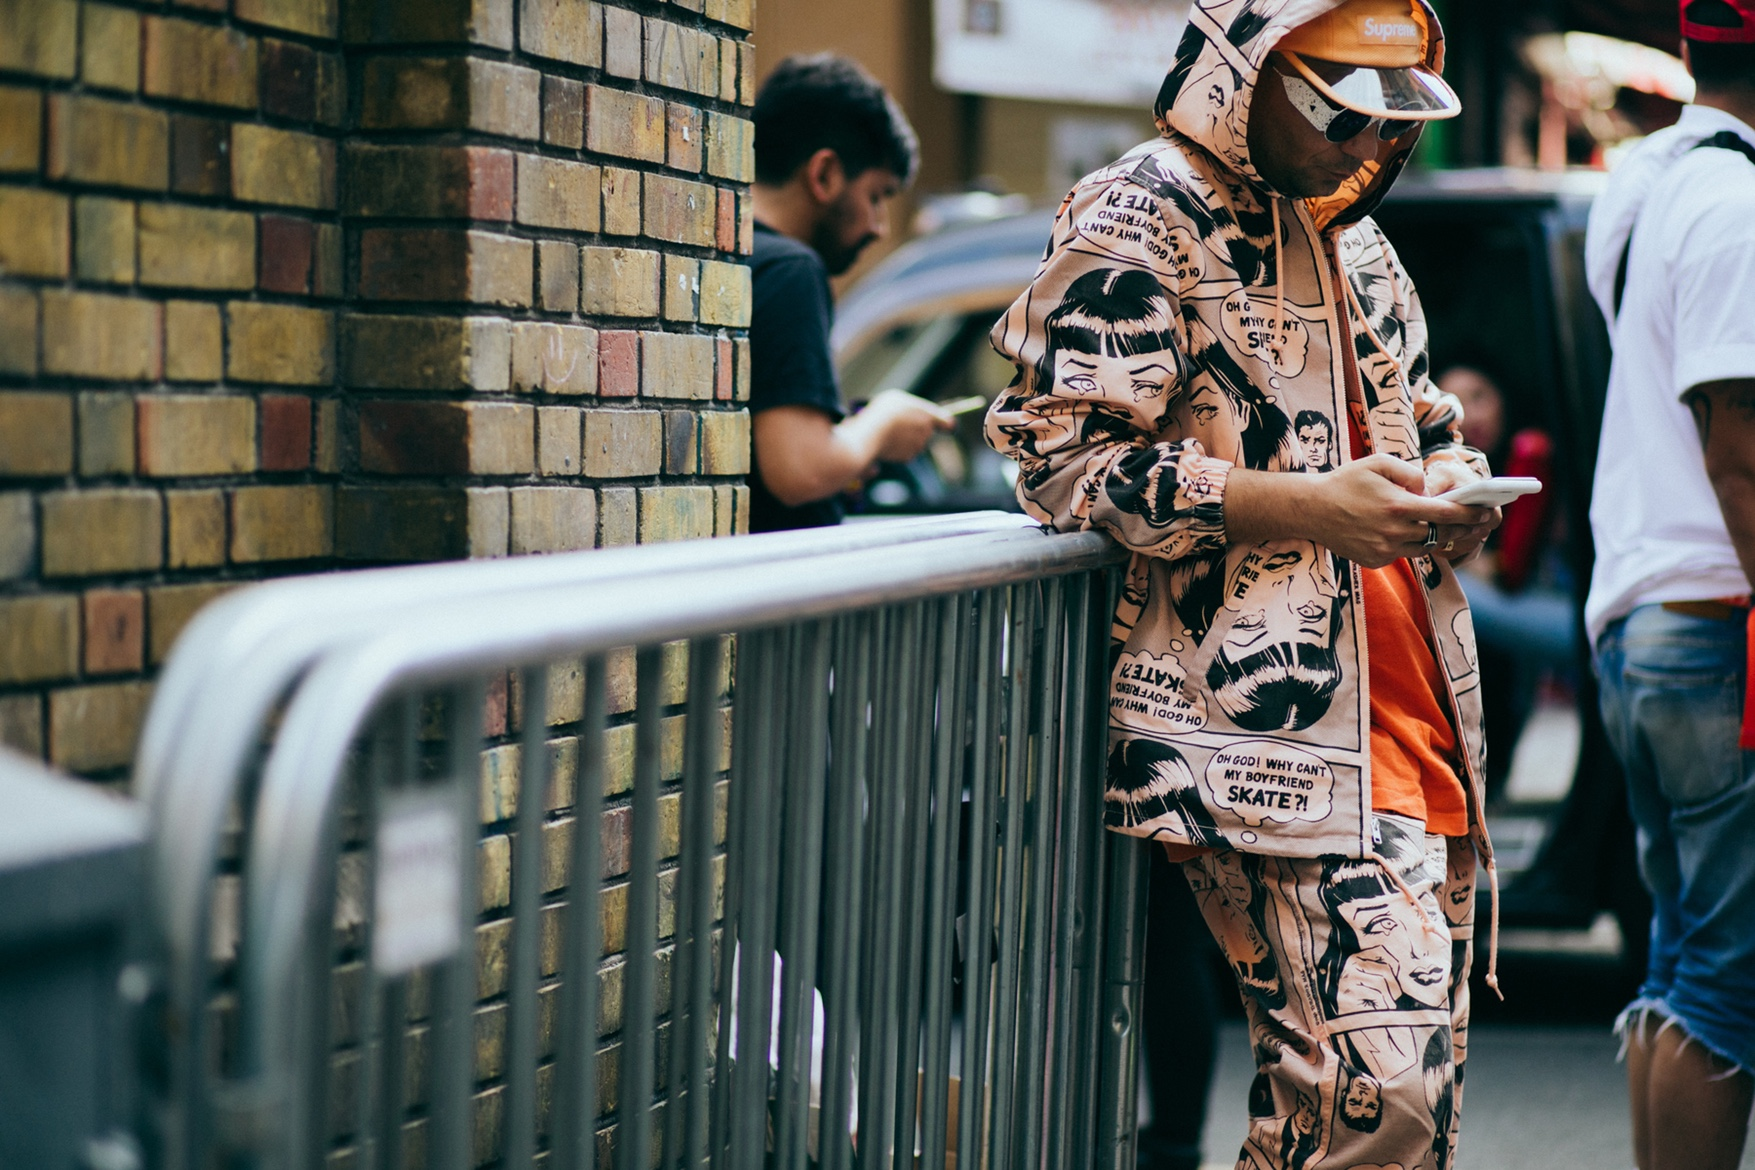 http-%2F%2Fhypebeast.com%2Fimage%2F2017%2F06%2FStreet-Style-London-Fashion-Week-Mens-Spring-01.jpg